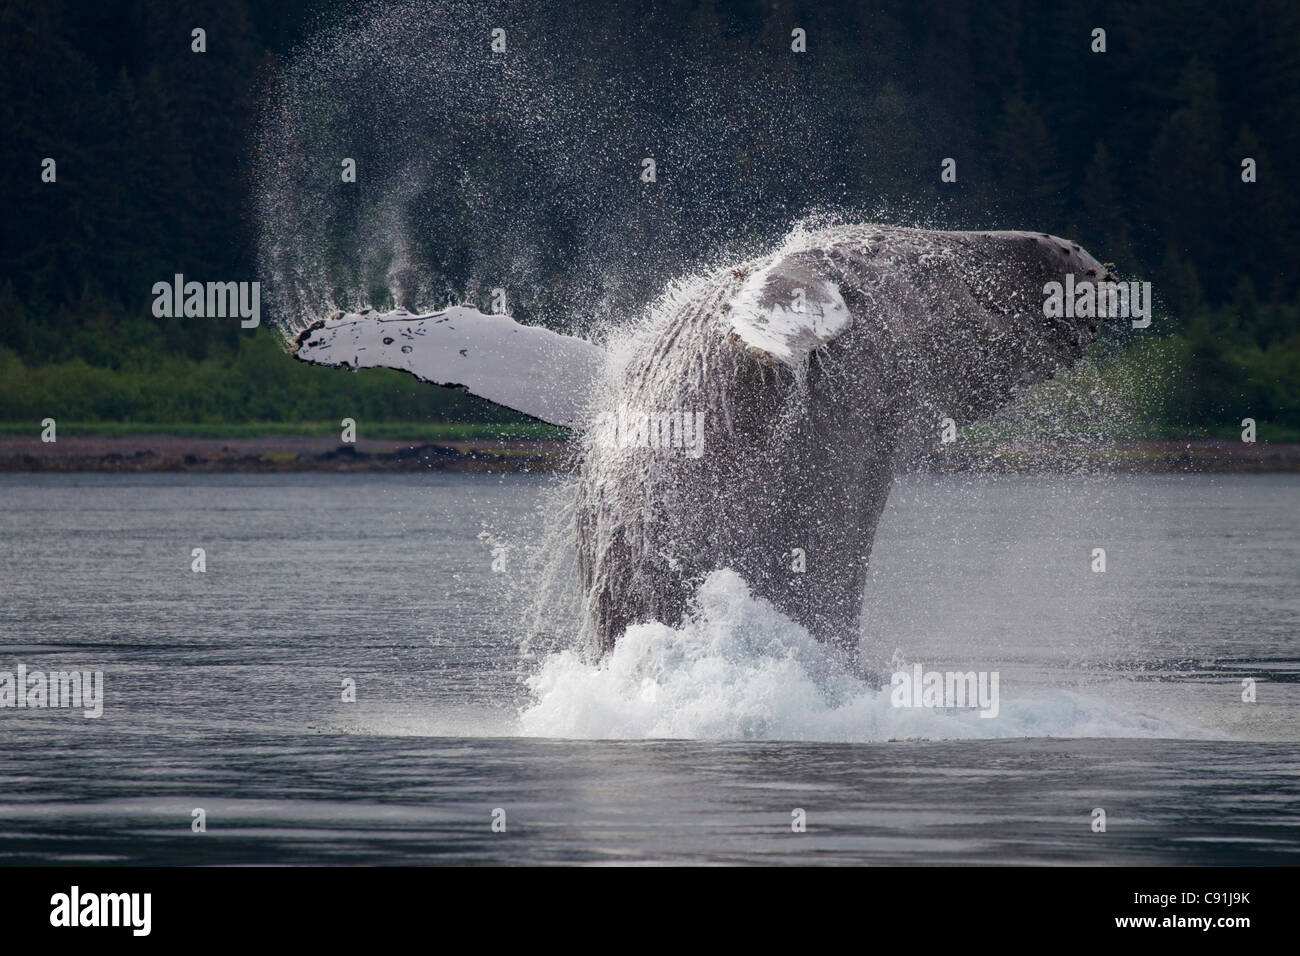 Humpback whale breaching in front of Montague Island, Prince William Sound, Southcentral Alaska, Summer - Stock Image